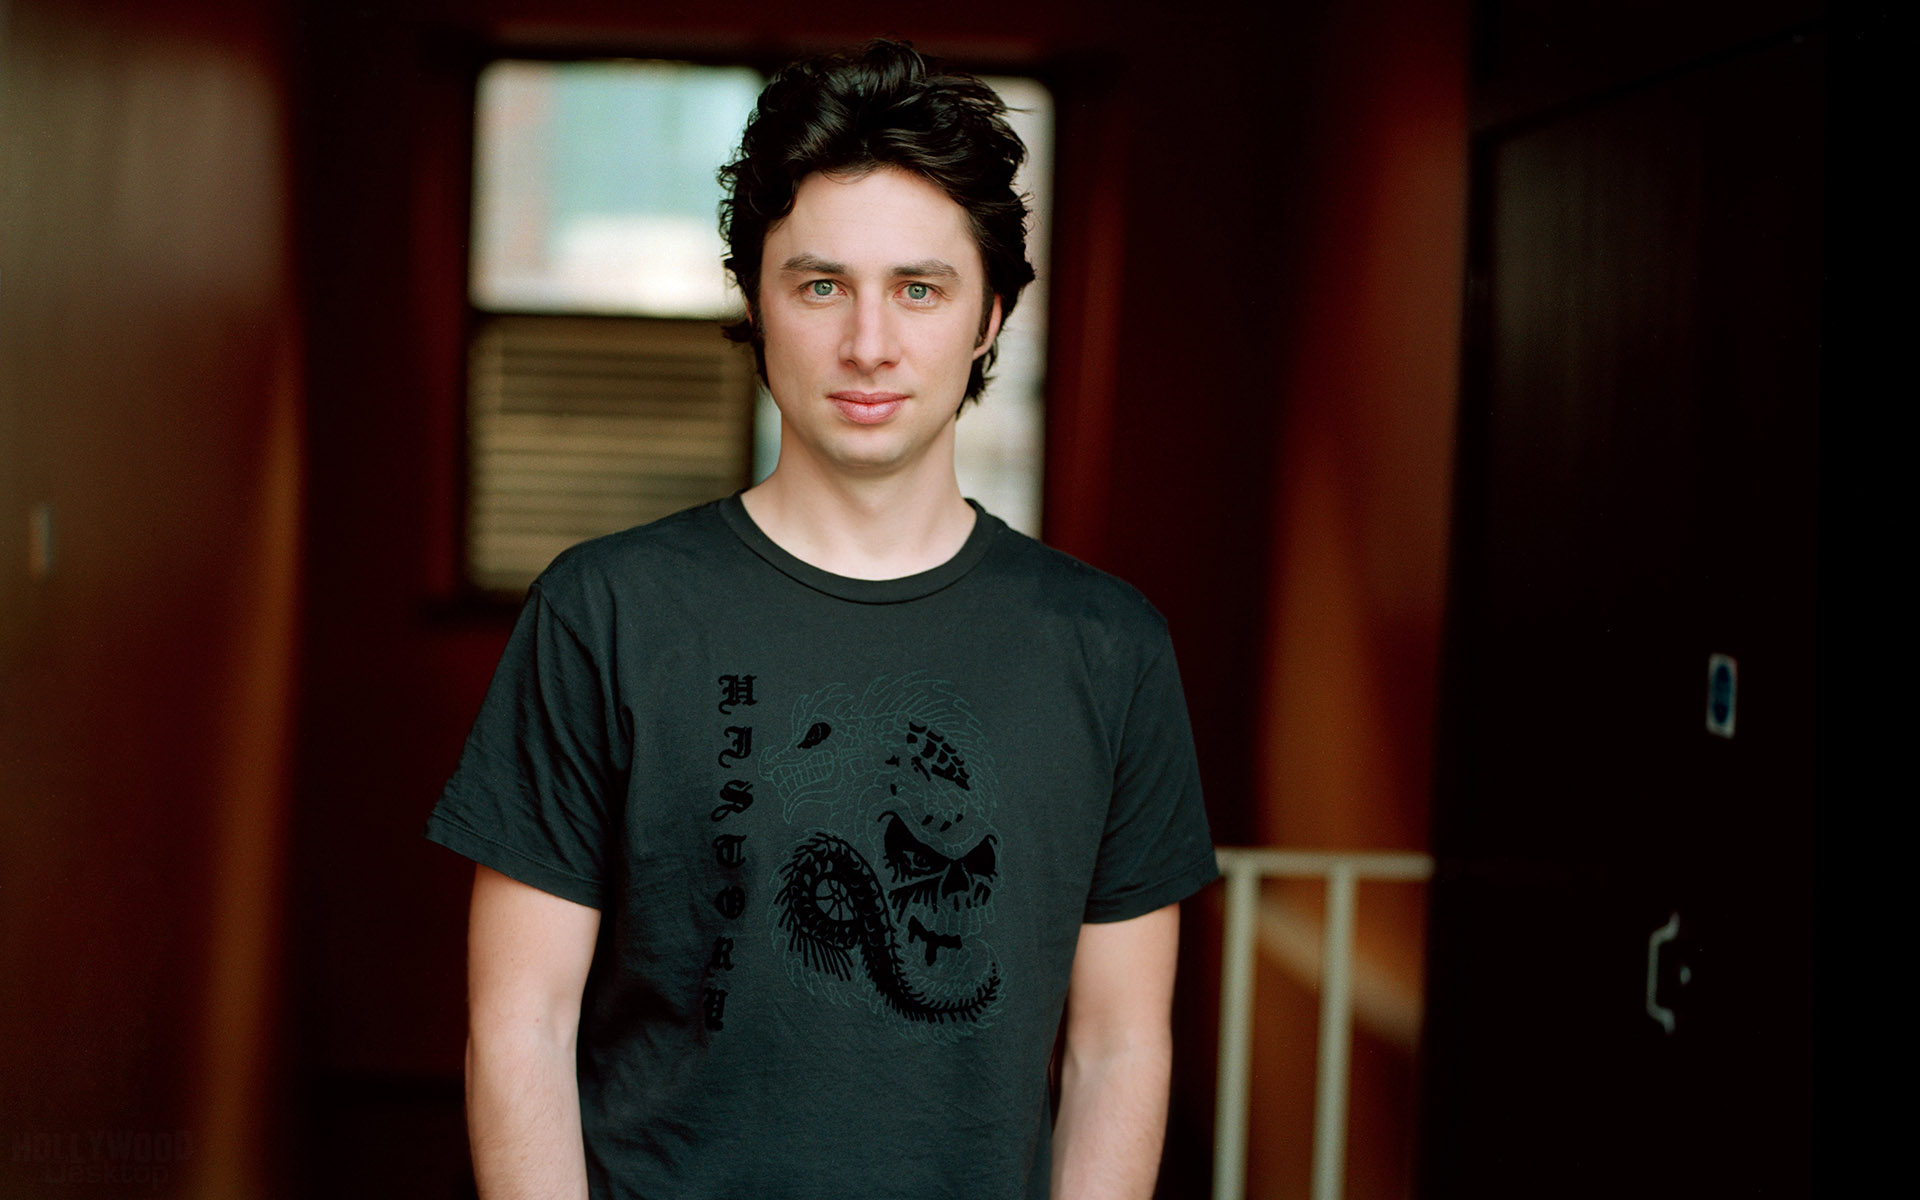 zach braff wallpaper background